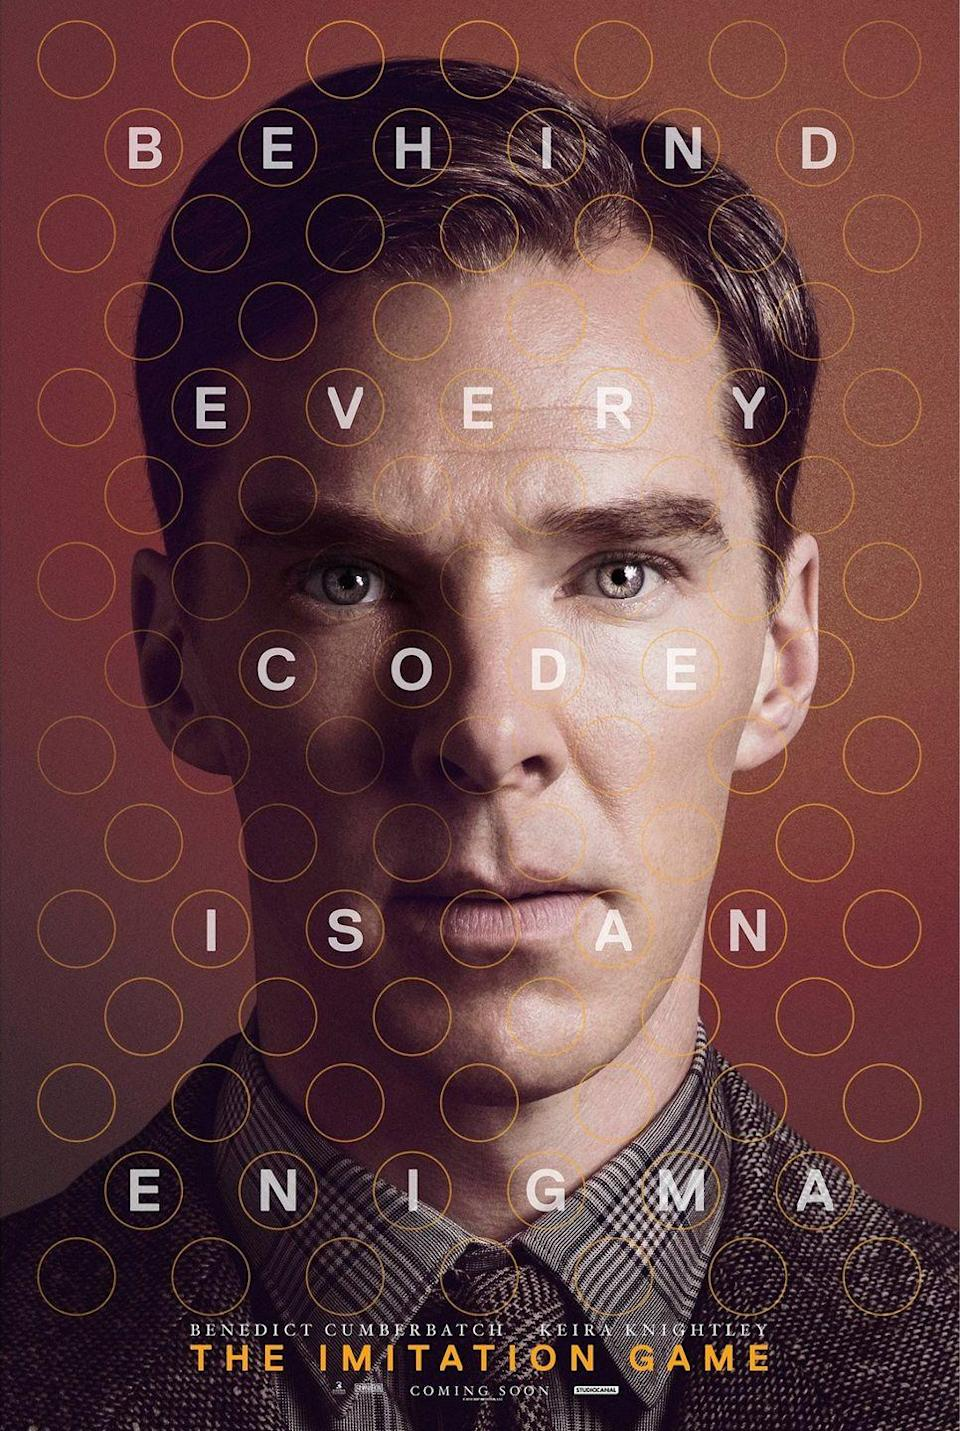 """<p><a class=""""link rapid-noclick-resp"""" href=""""https://www.amazon.com/The-Imitation-Game-Benedict-Cumberbatch/dp/B00R7FZ074?tag=syn-yahoo-20&ascsubtag=%5Bartid%7C10067.g.15907978%5Bsrc%7Cyahoo-us"""" rel=""""nofollow noopener"""" target=""""_blank"""" data-ylk=""""slk:Watch Now"""">Watch Now</a></p><p><em>The Imitation Game</em> charts how Alan Turing's game-changing innovations helped the Allies win the war—then, tragically, shows his country would persecute him anyway.</p>"""